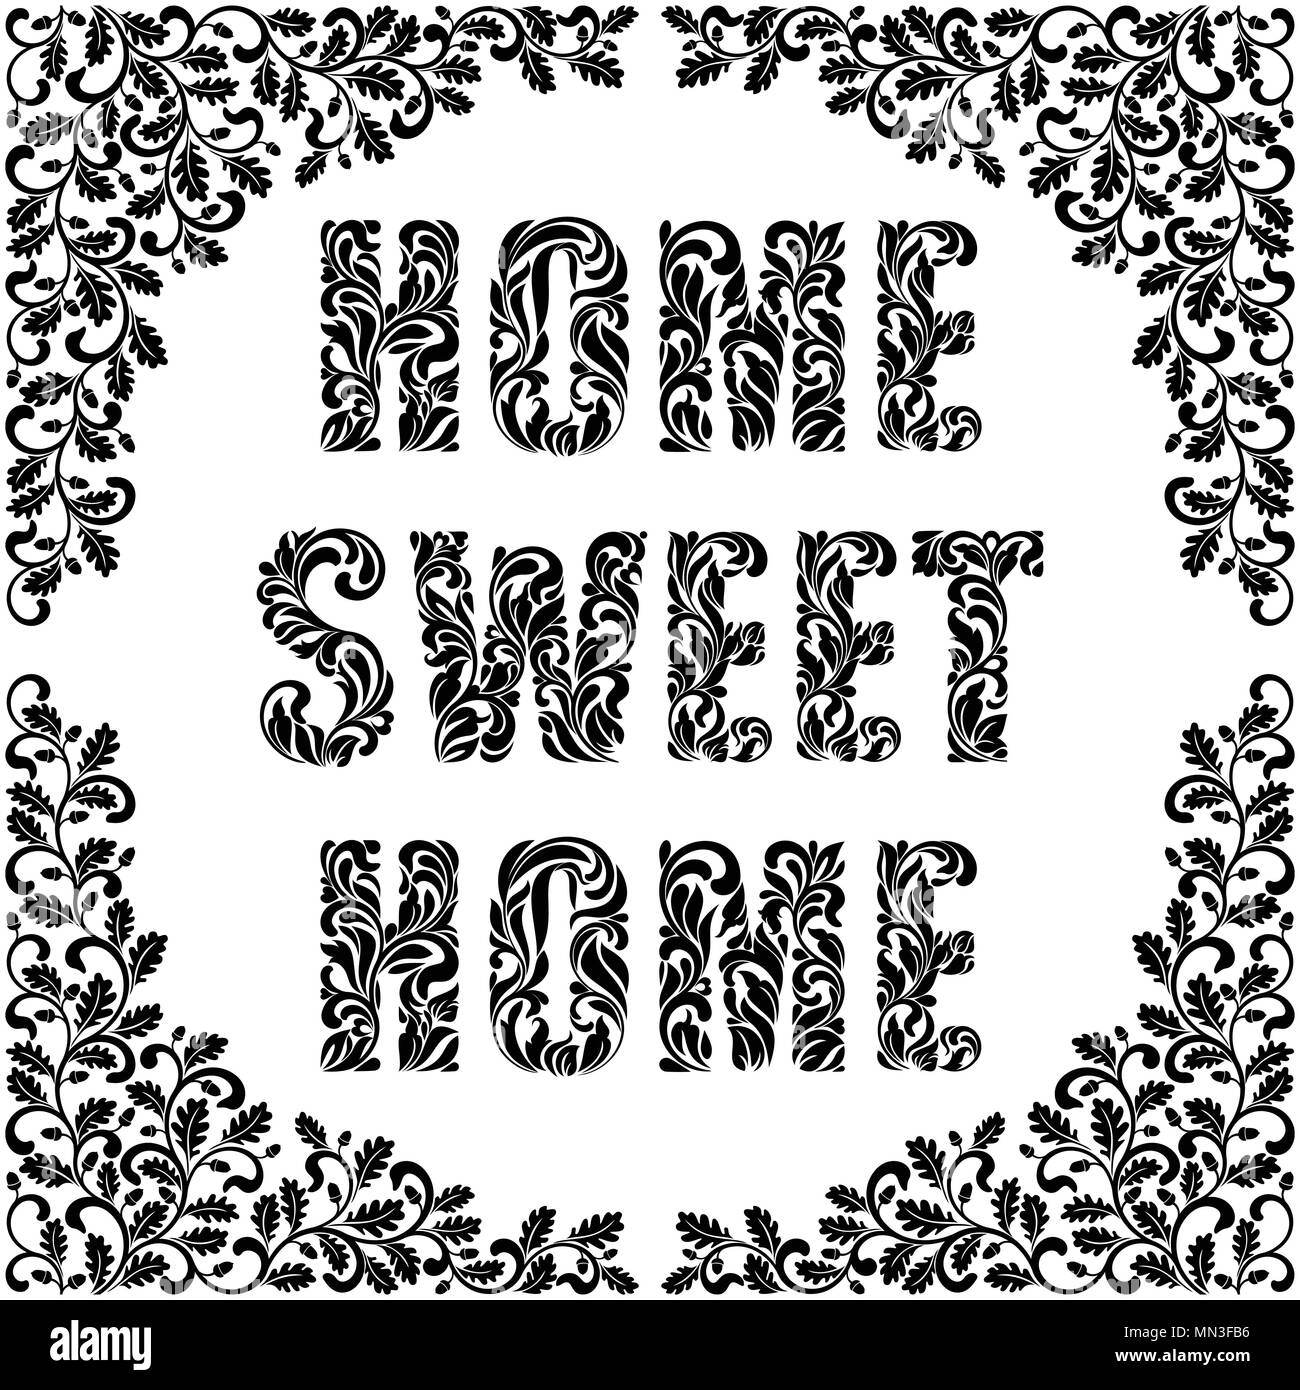 Home, sweet home. Decorative Font made in swirls and floral elements. Frame decorated twisted branches with oak leaves and acorns isolated on a white  - Stock Vector